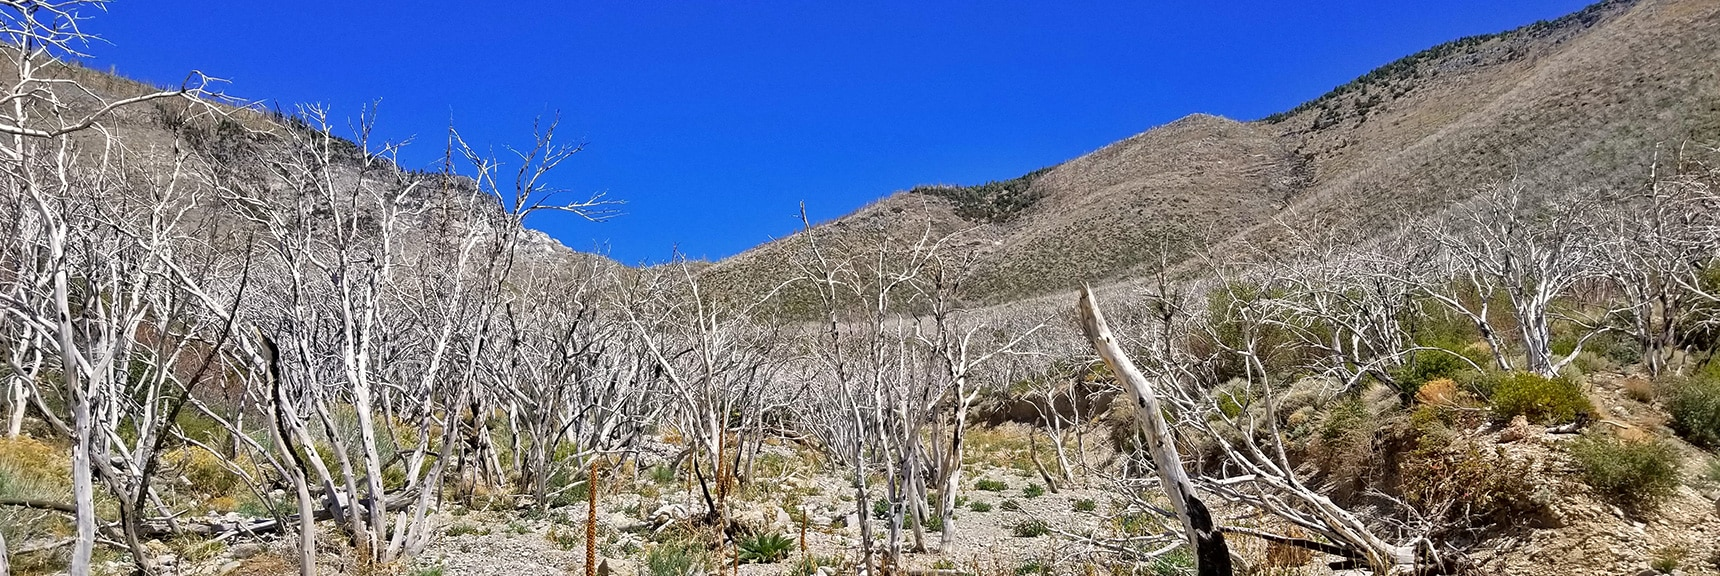 At 7,000ft Canyon Floor Sees Burned Out Forest, More Brush | Harris Mountain from Lovell Canyon Nevada